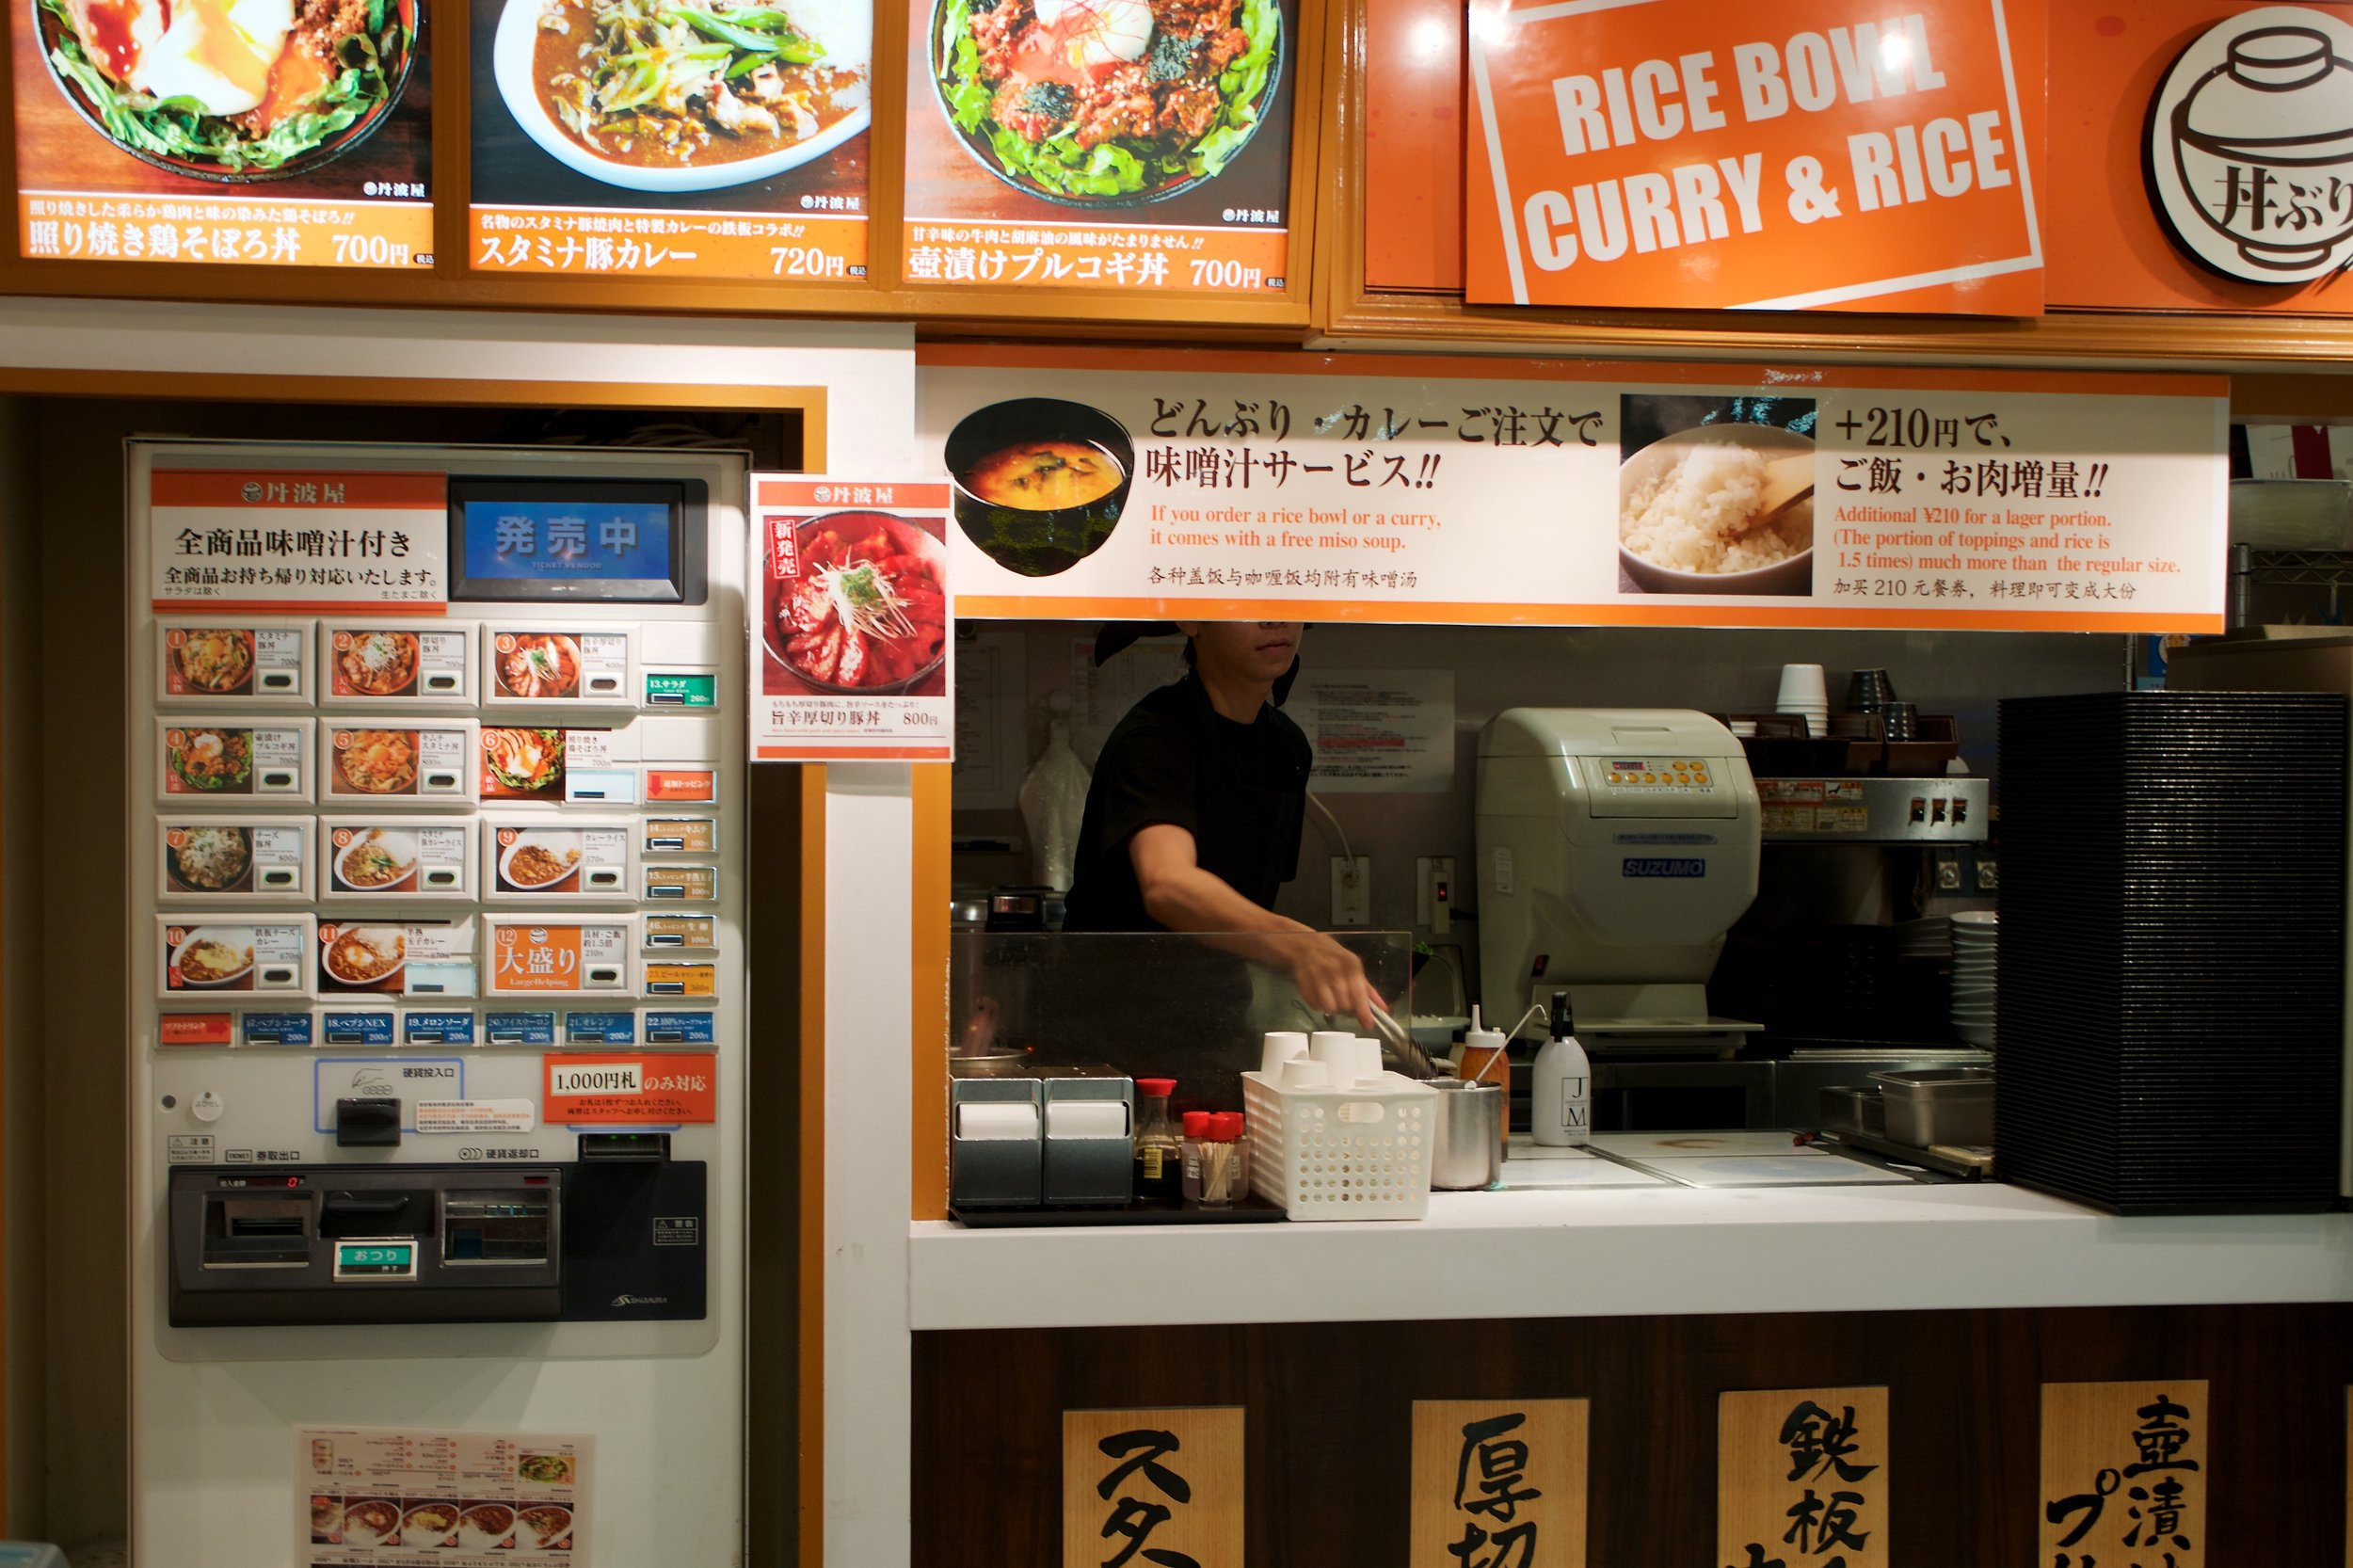 Curry house with ordering kiosk